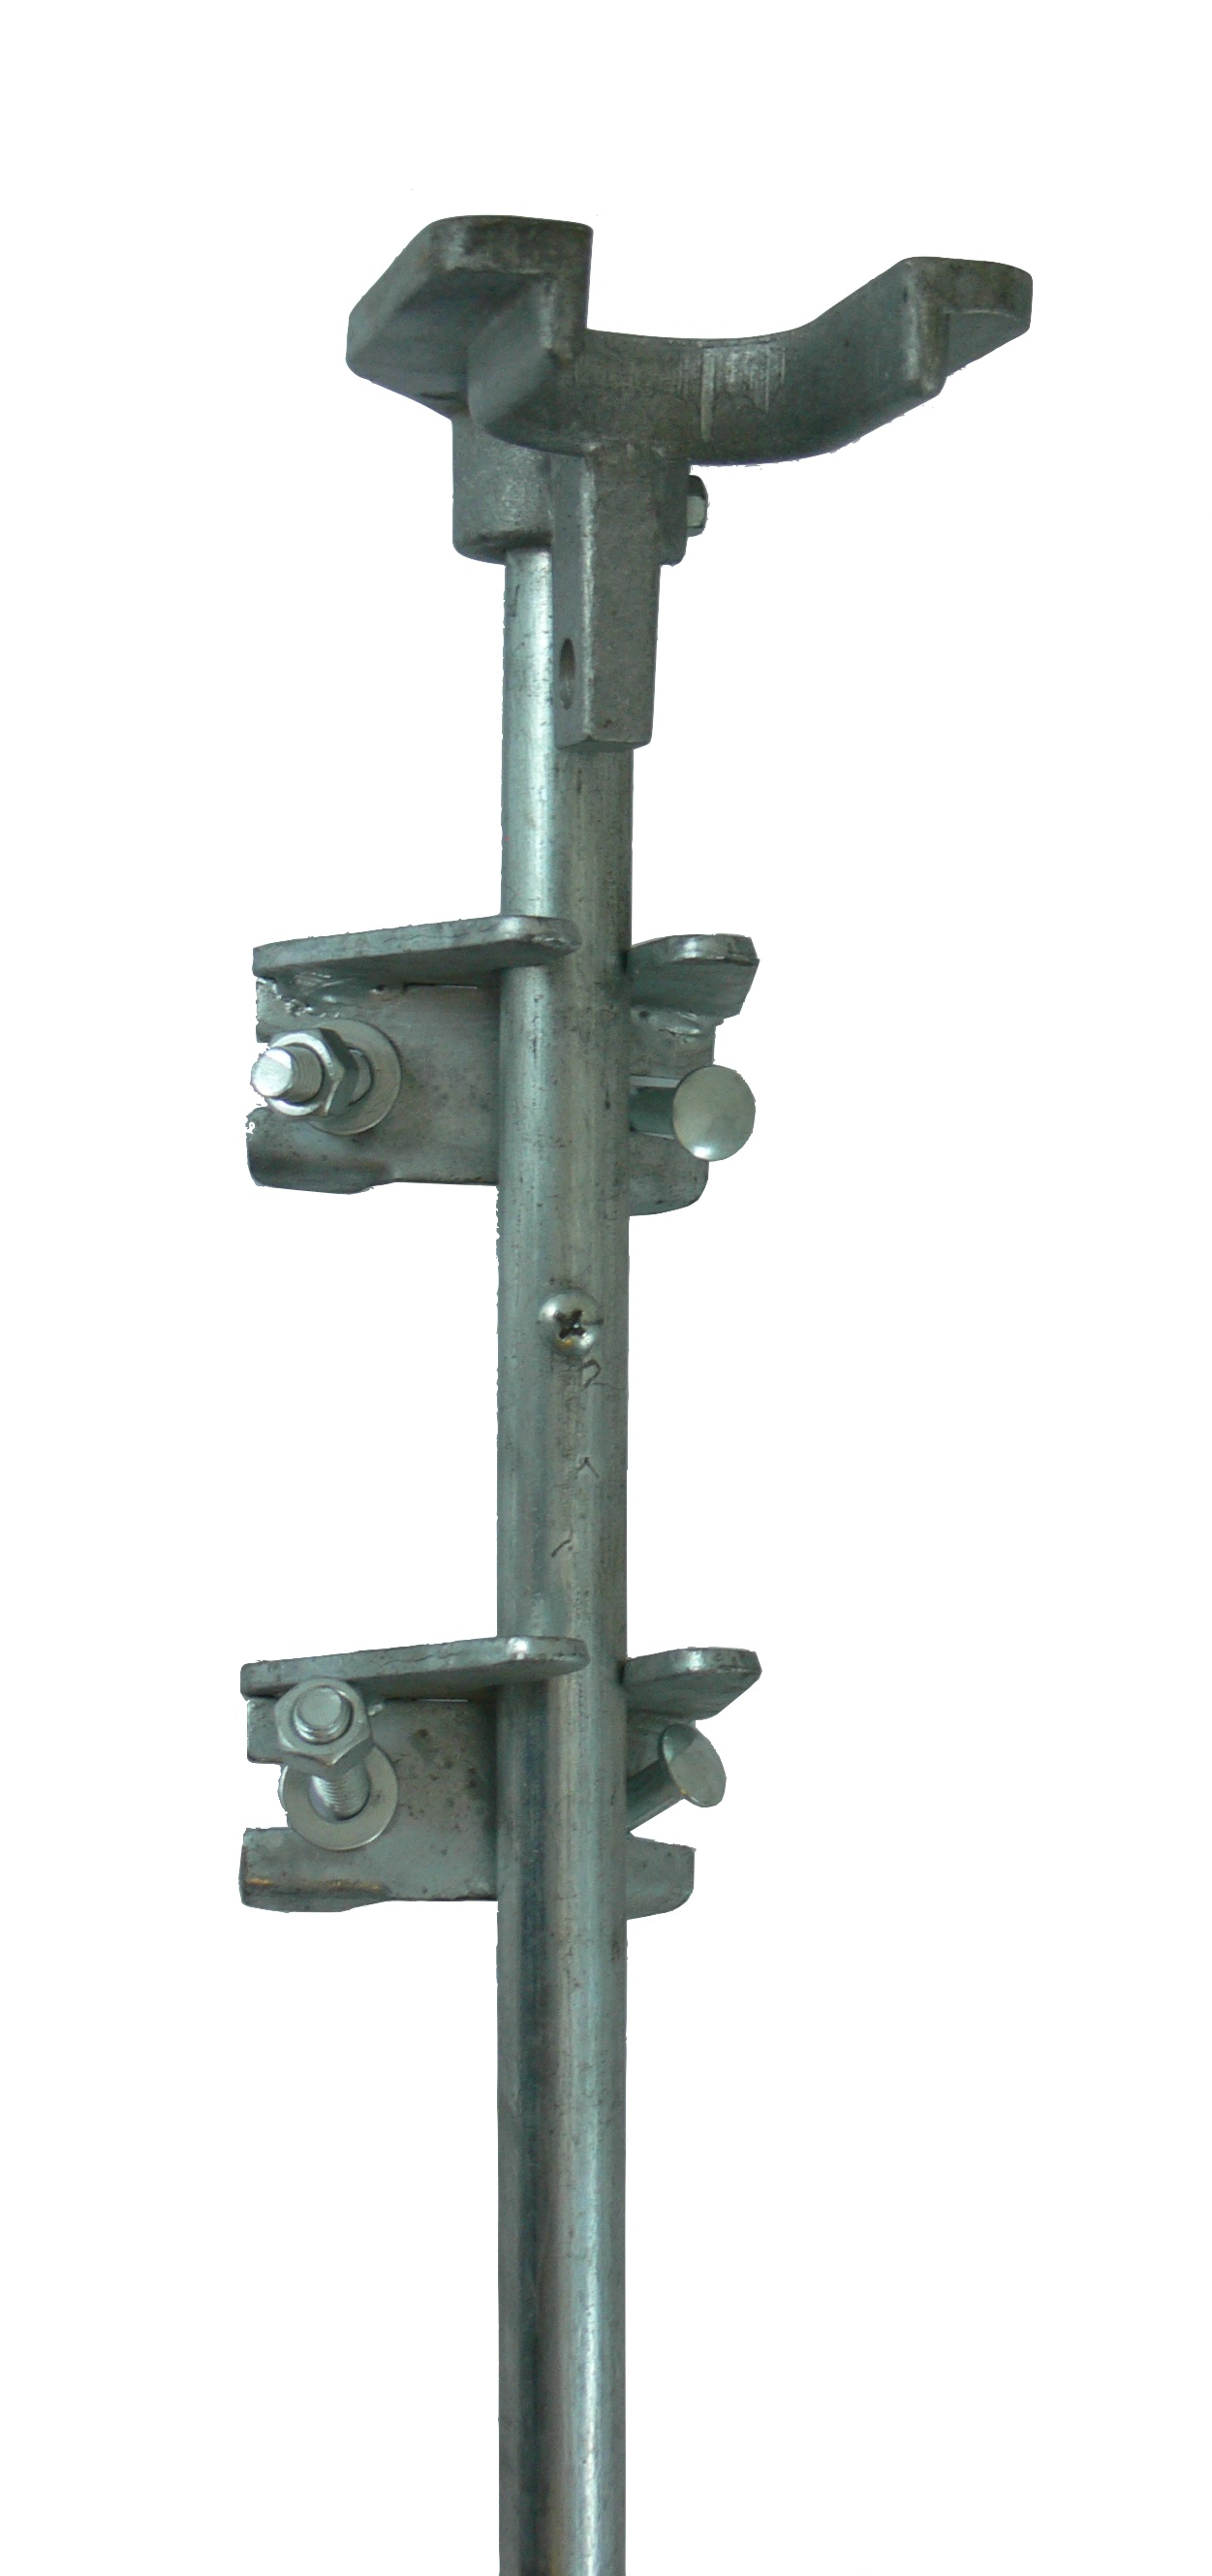 Chain Link Fence Gate Latch CHAIN LINK DROP ROD/PIN LATCH